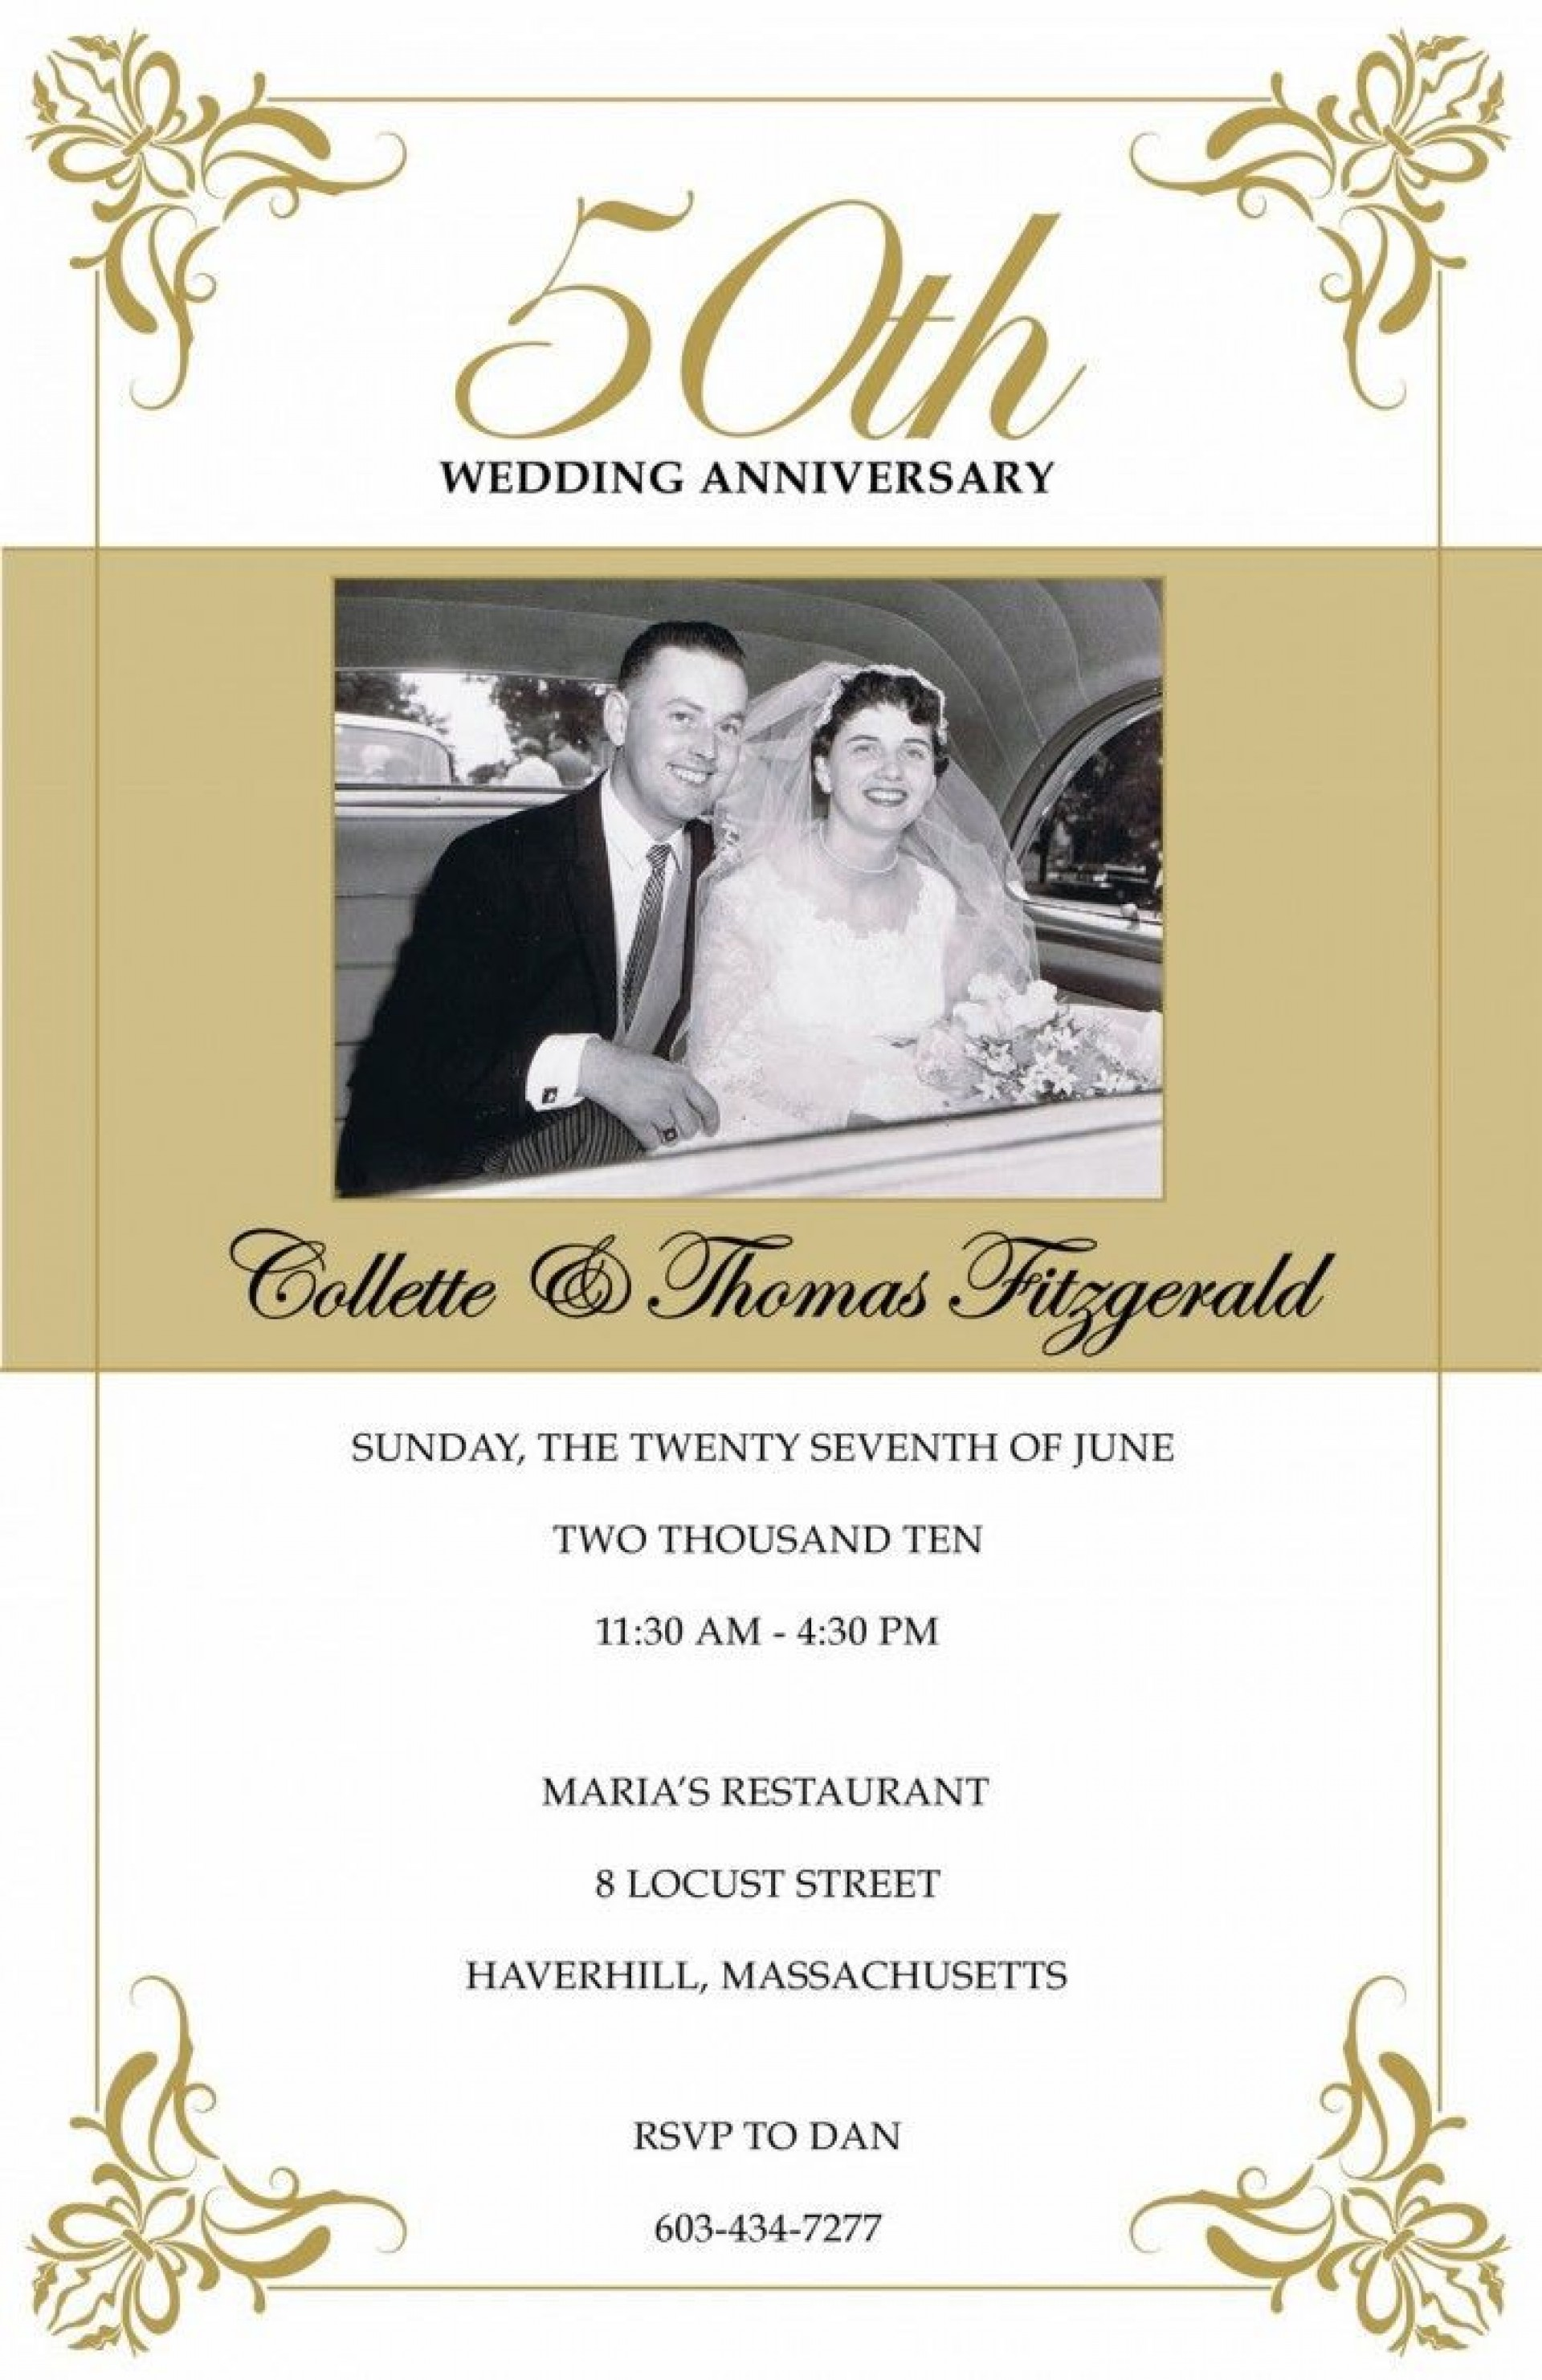 007 Imposing Free 50th Wedding Anniversary Party Invitation Template Sample  Templates1920